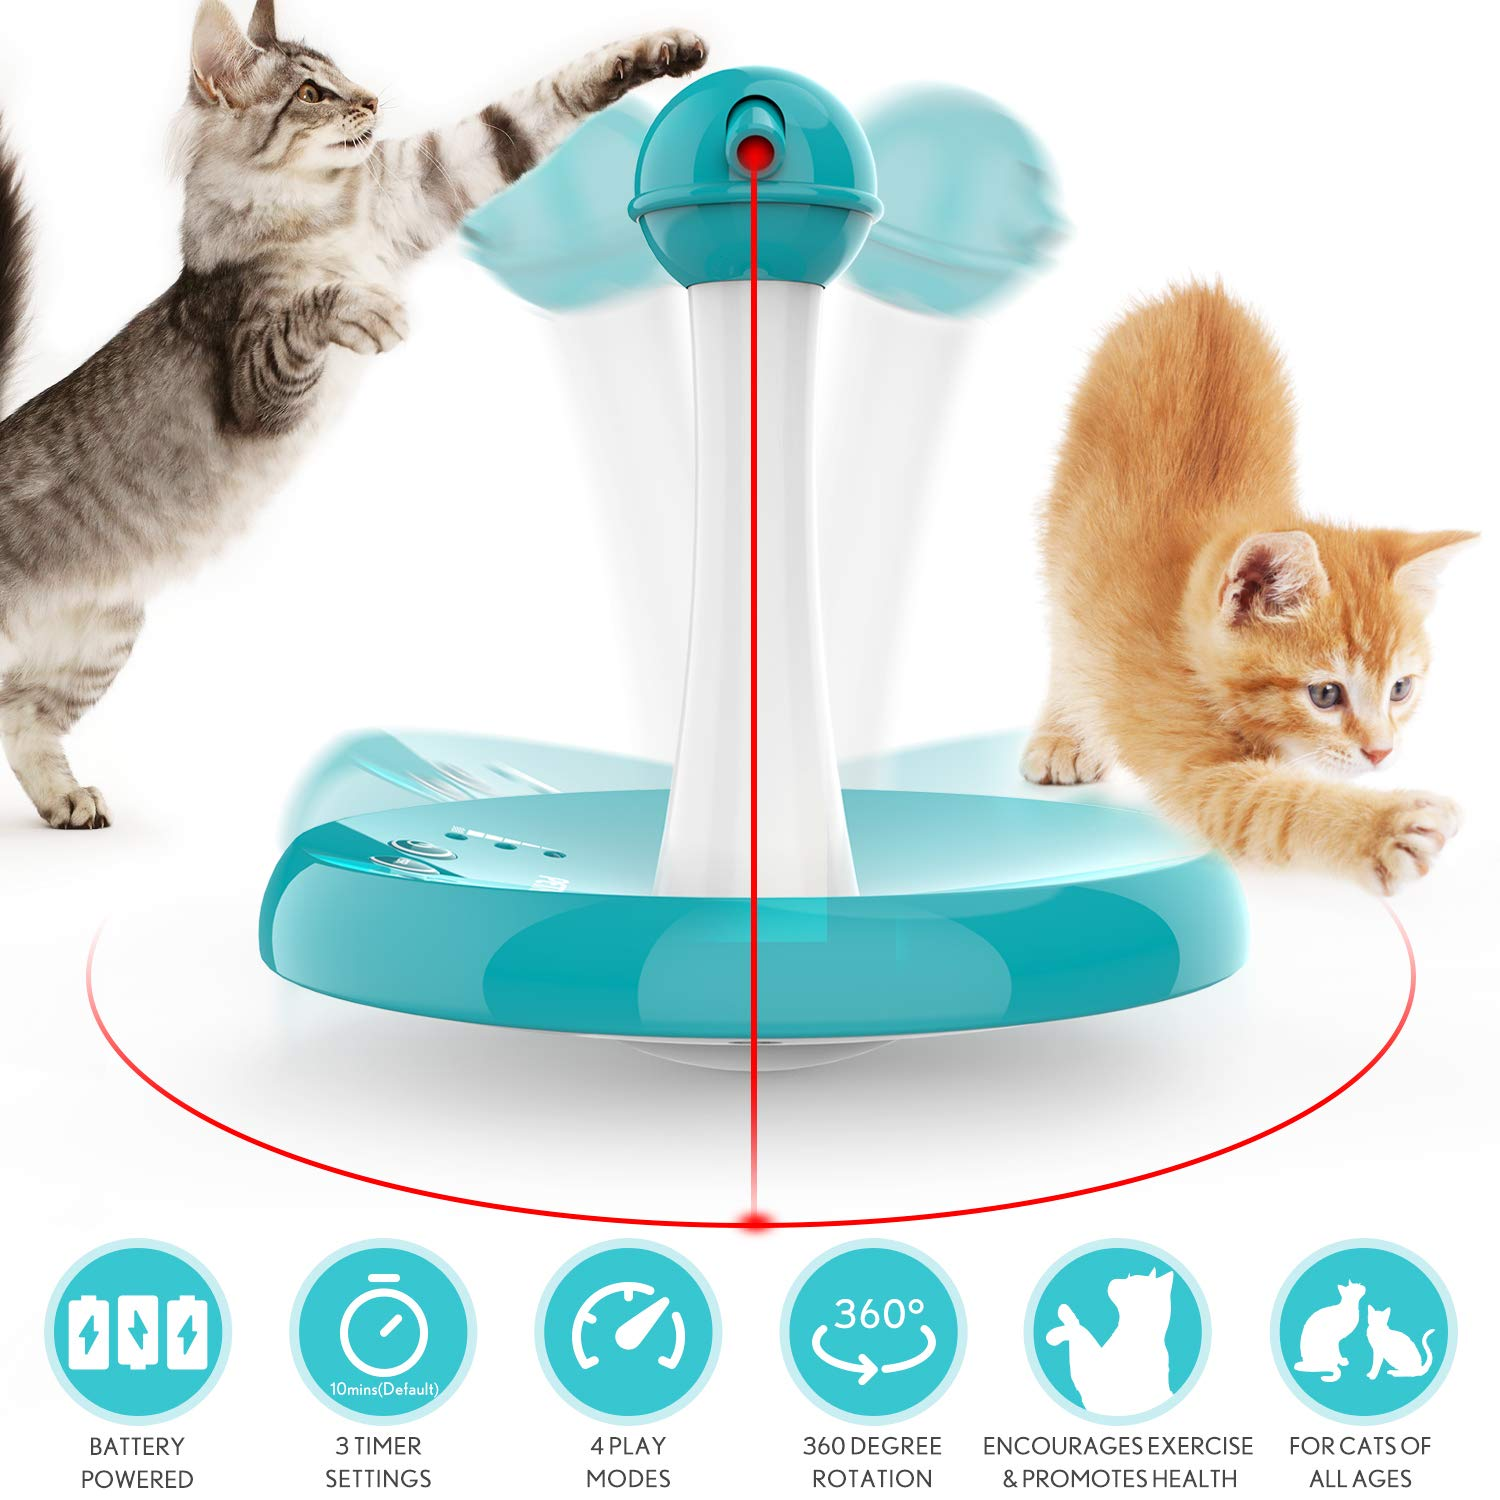 Newest Cat Laser toy,Upgraded Interactive Tumbler Laser Toys for Pet,Automatic Electronic Cats Pets Kitten Chaser Toy…